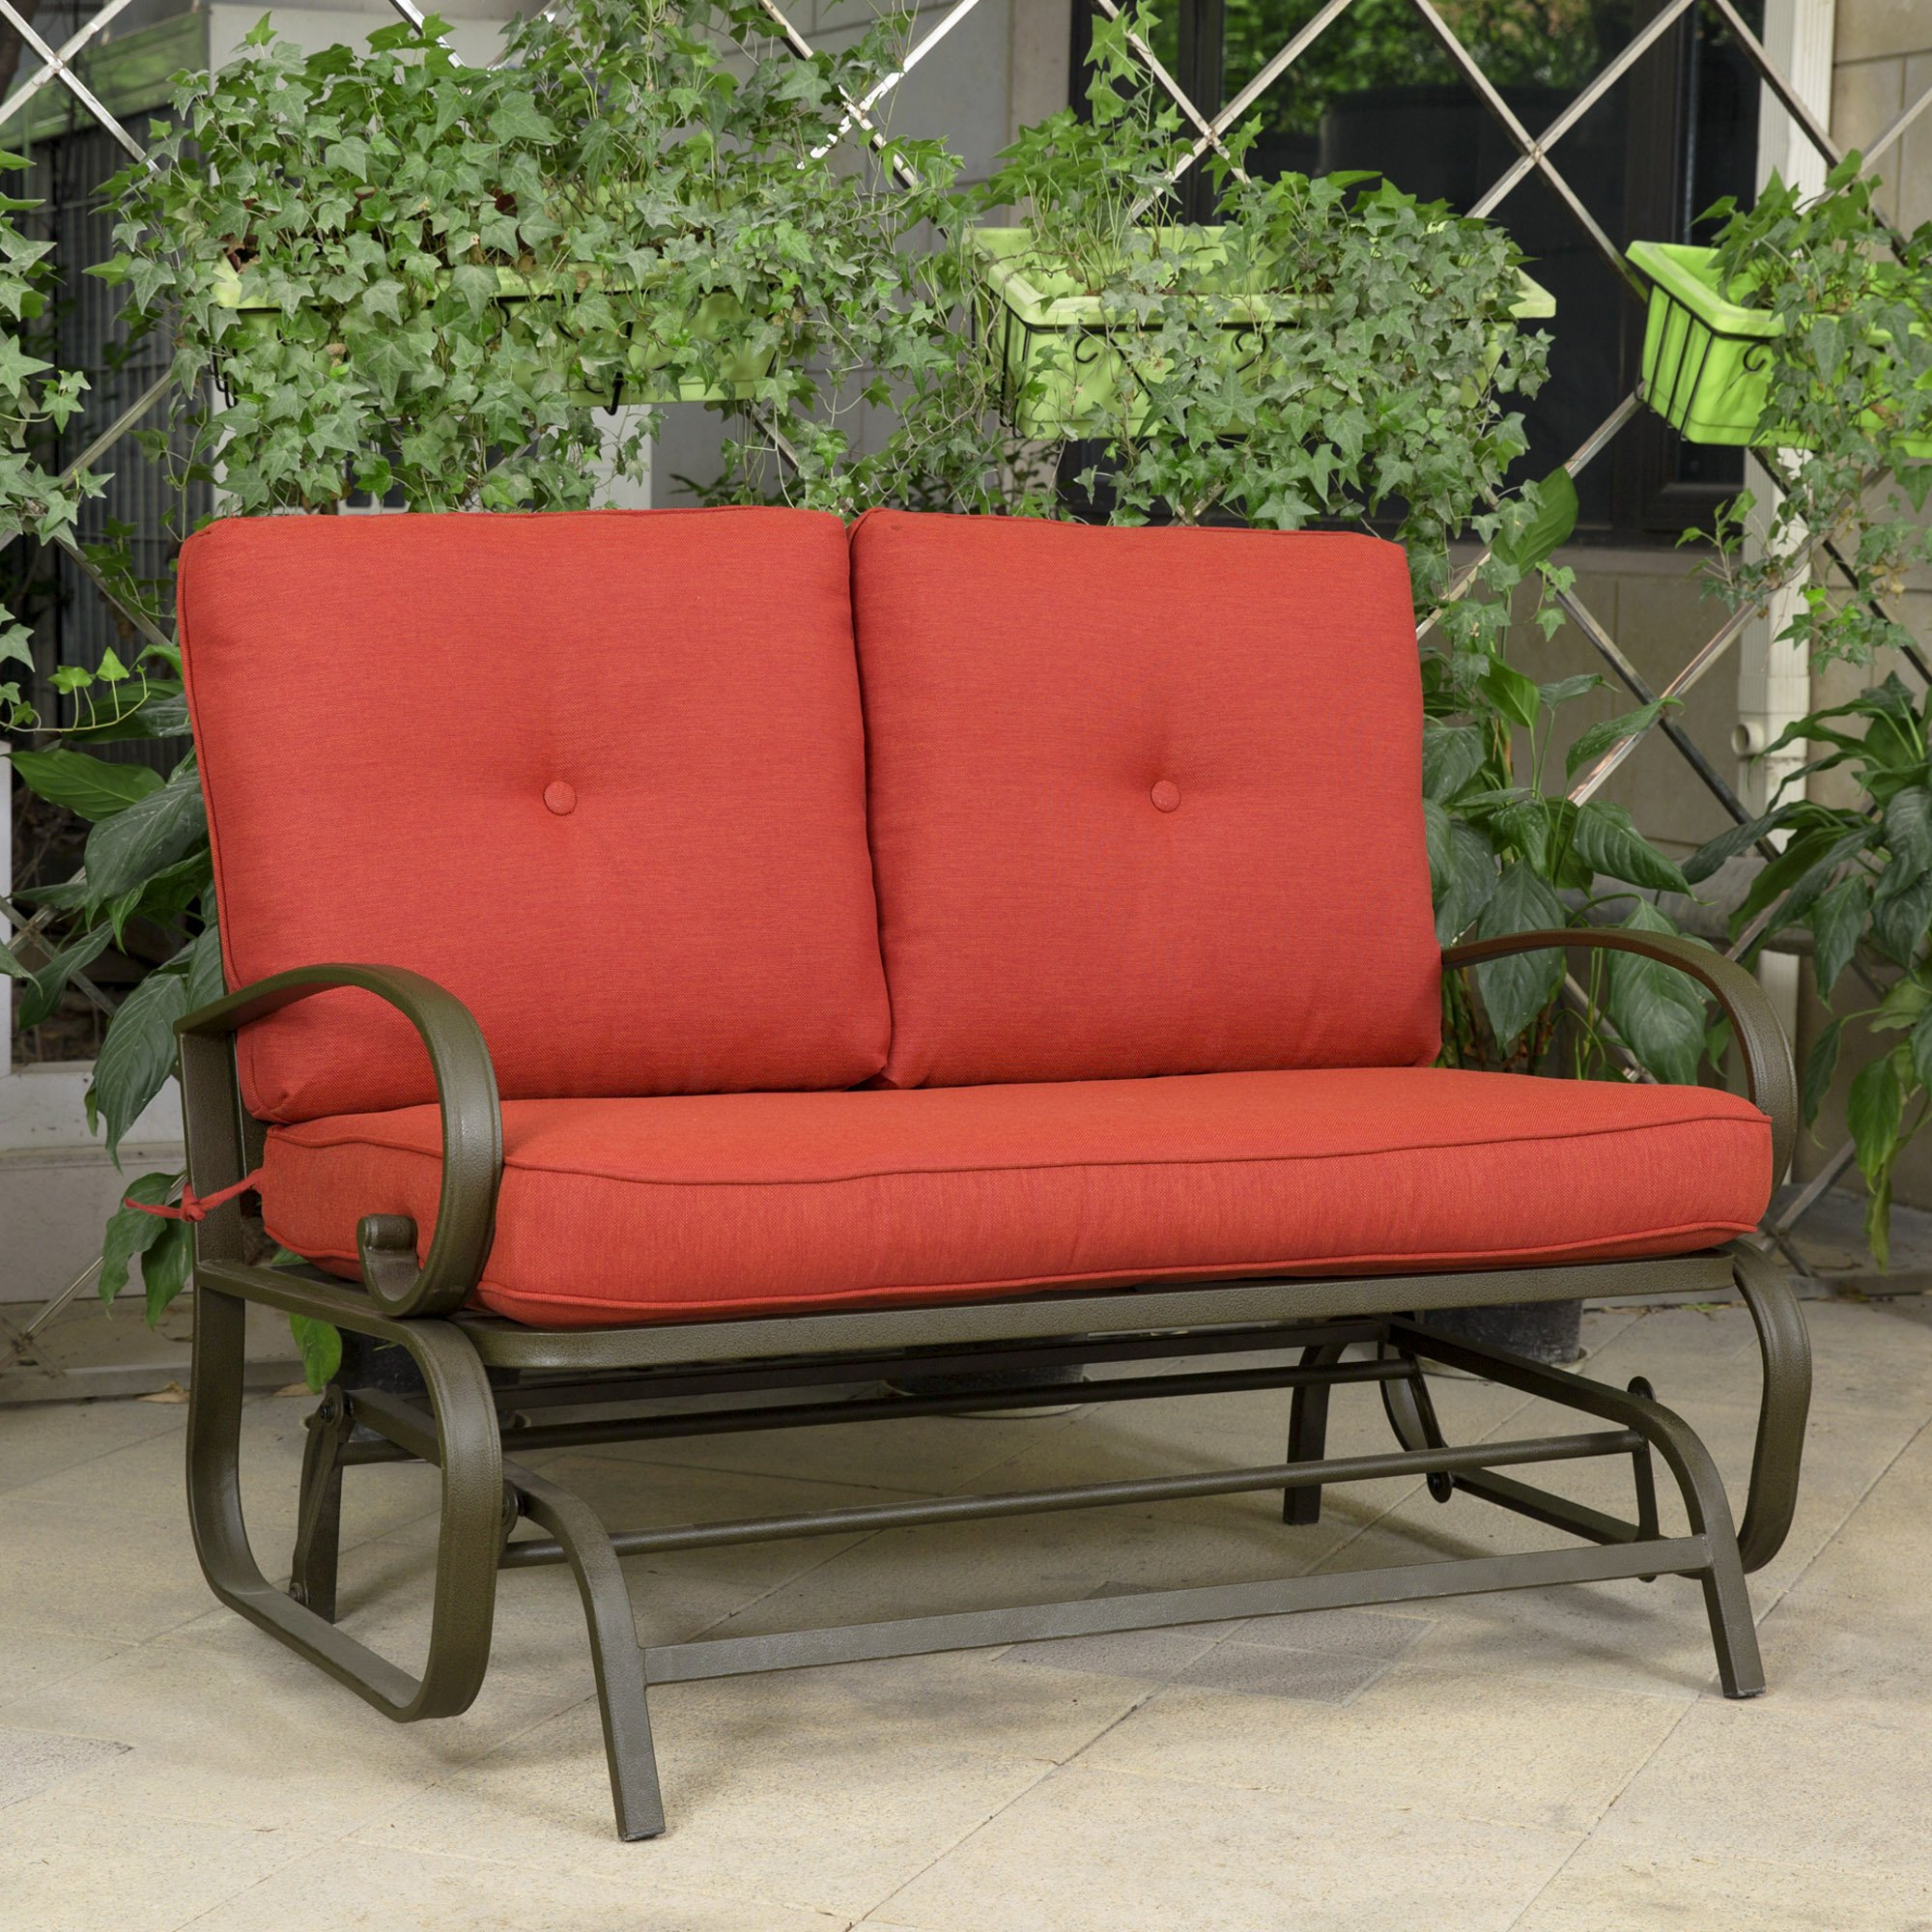 Buy Outdoor Patio Leisure Swing Rocker Glider Bench Loveseat With Regard To Steel Patio Swing Glider Benches (View 23 of 25)